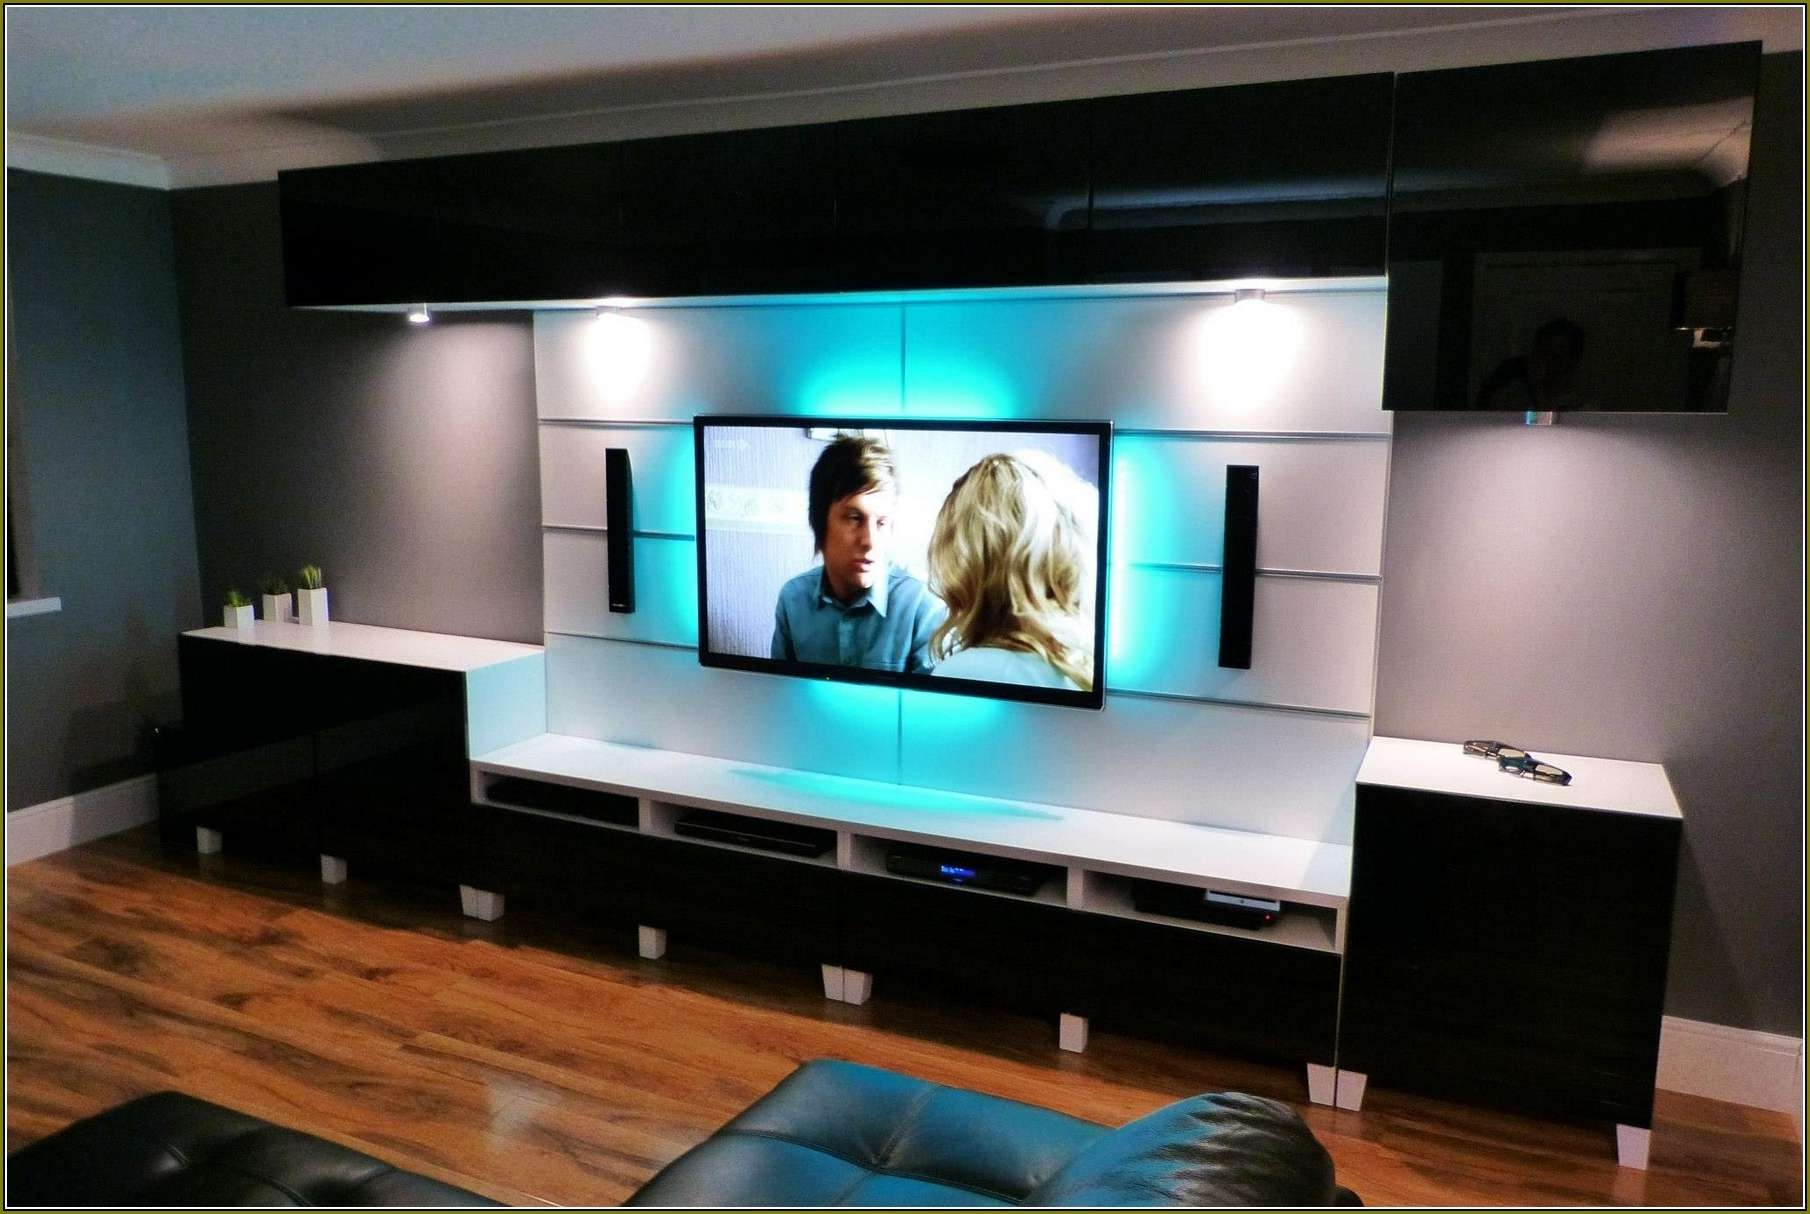 White Solid Wood Wall Mount Tv Stand With Blue Led Light Of With Regard To Led Tv Cabinets (View 20 of 20)